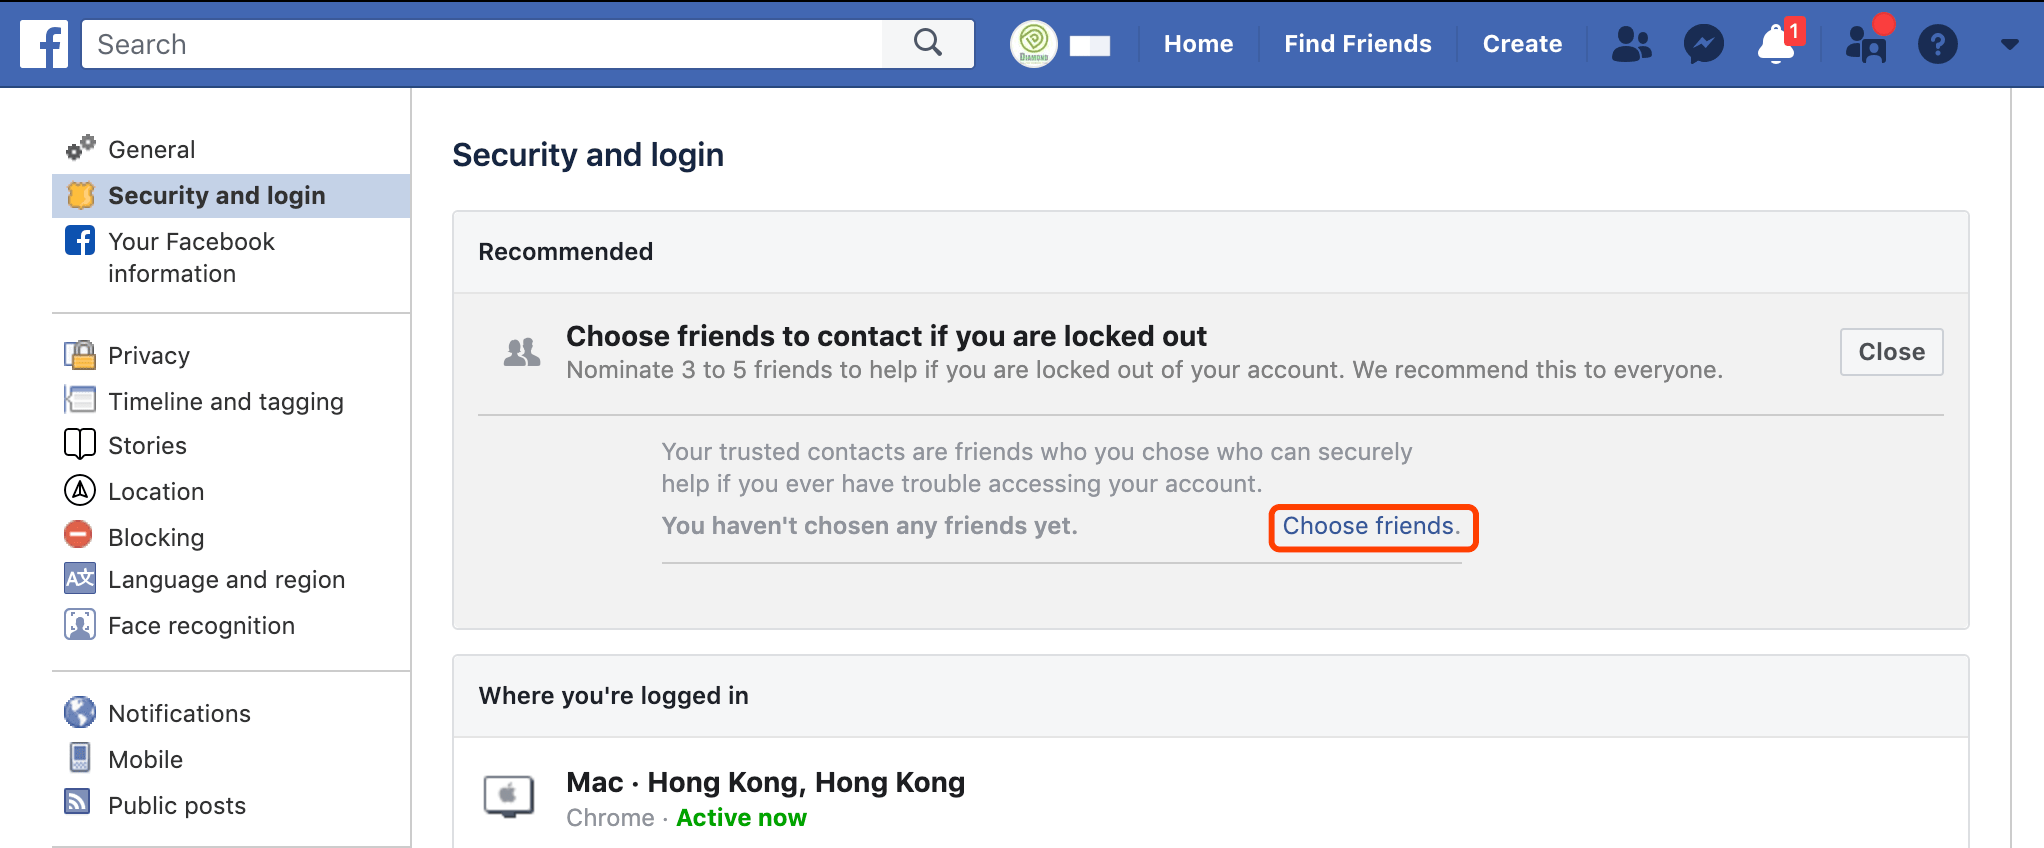 choose-friends-to-contact-if-you-are-locked-out-digital-marketing-agency-hong-kong